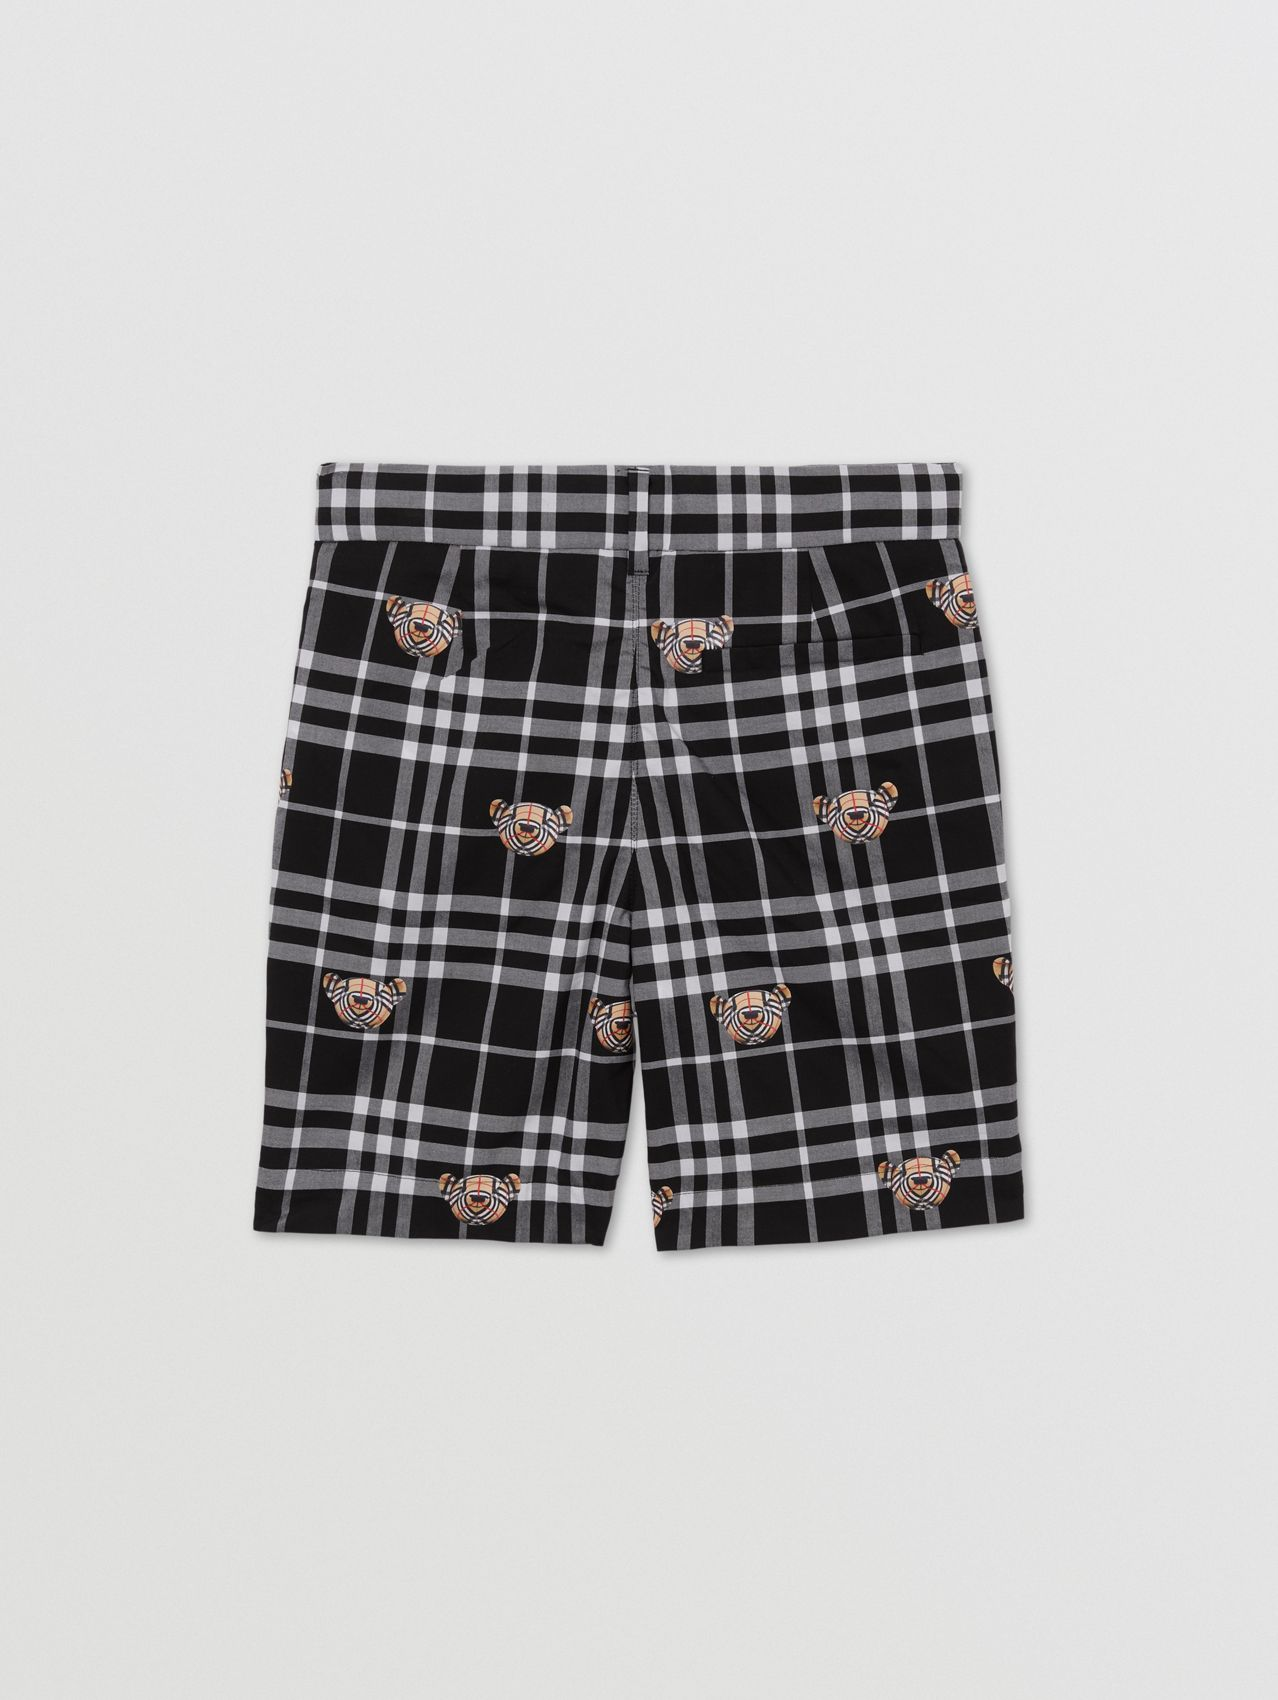 Thomas Bear Print Check Cotton Shorts in Black/white